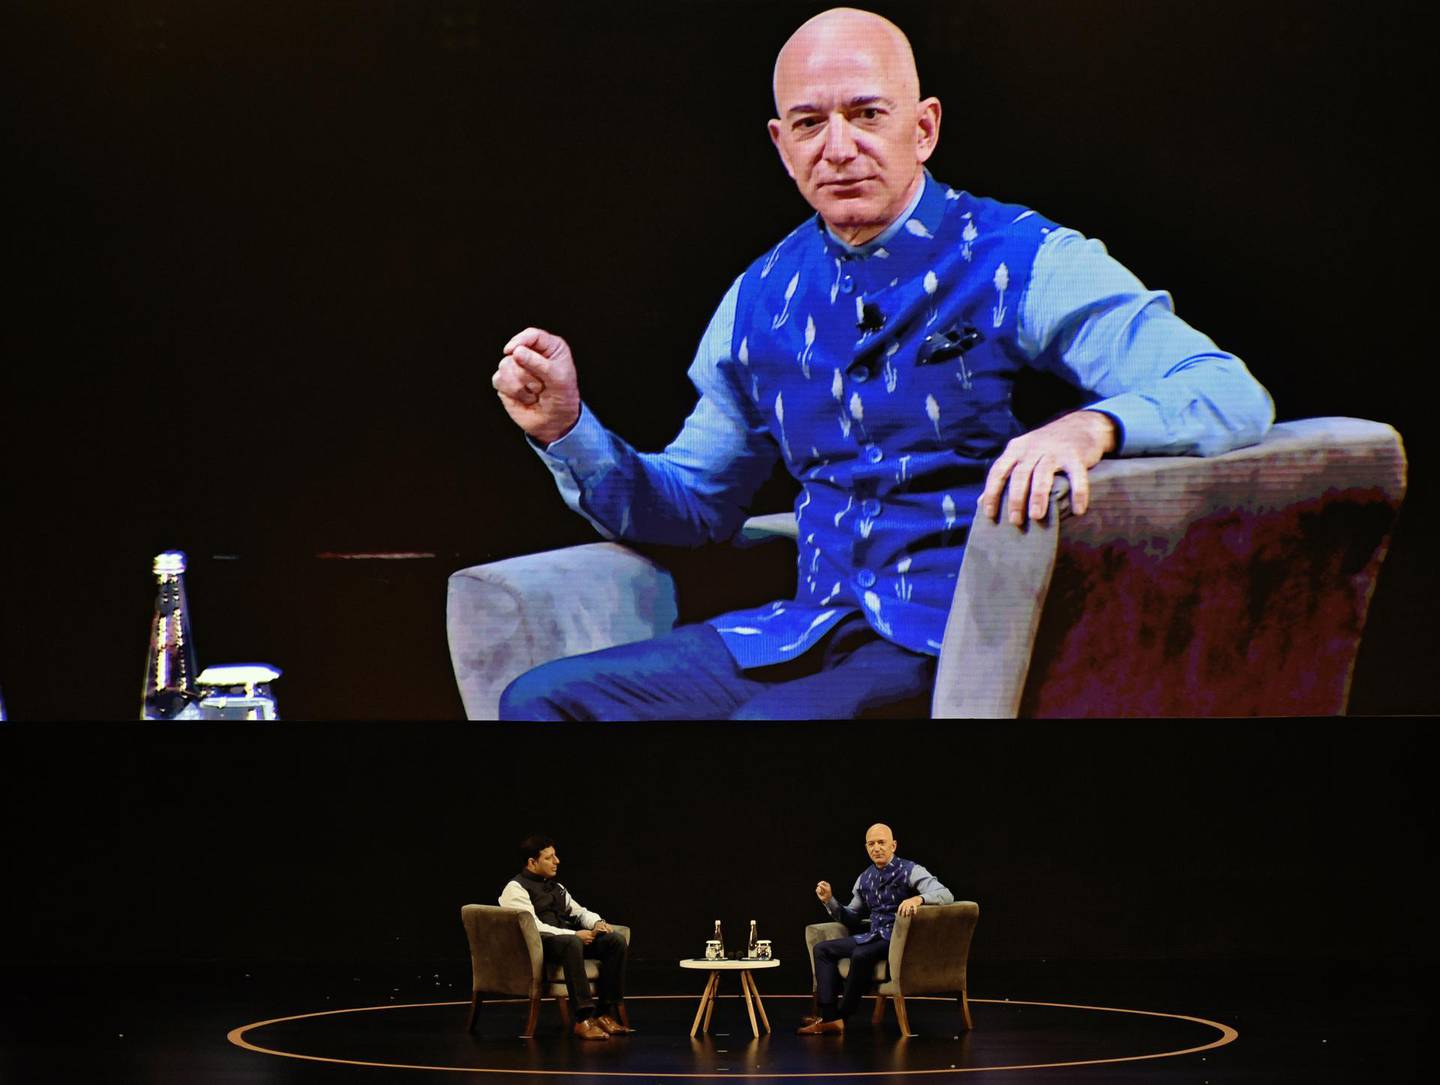 Jeff Bezos, founder and chief executive officer of Amazon.com Inc., right, speaks as Amit Agarwal, head of India, listens during the opening session of Amazon Sambhav event in New Delhi, India, on Wednesday, Jan. 15, 2020. Bezos got a bitter reception during his India visit this week after the country's antitrust regulator initiated a formal investigation hours before his arrival and infuriated small store owners demonstrated in the streets. Photographer: Anindito Mukherjee/Bloomberg